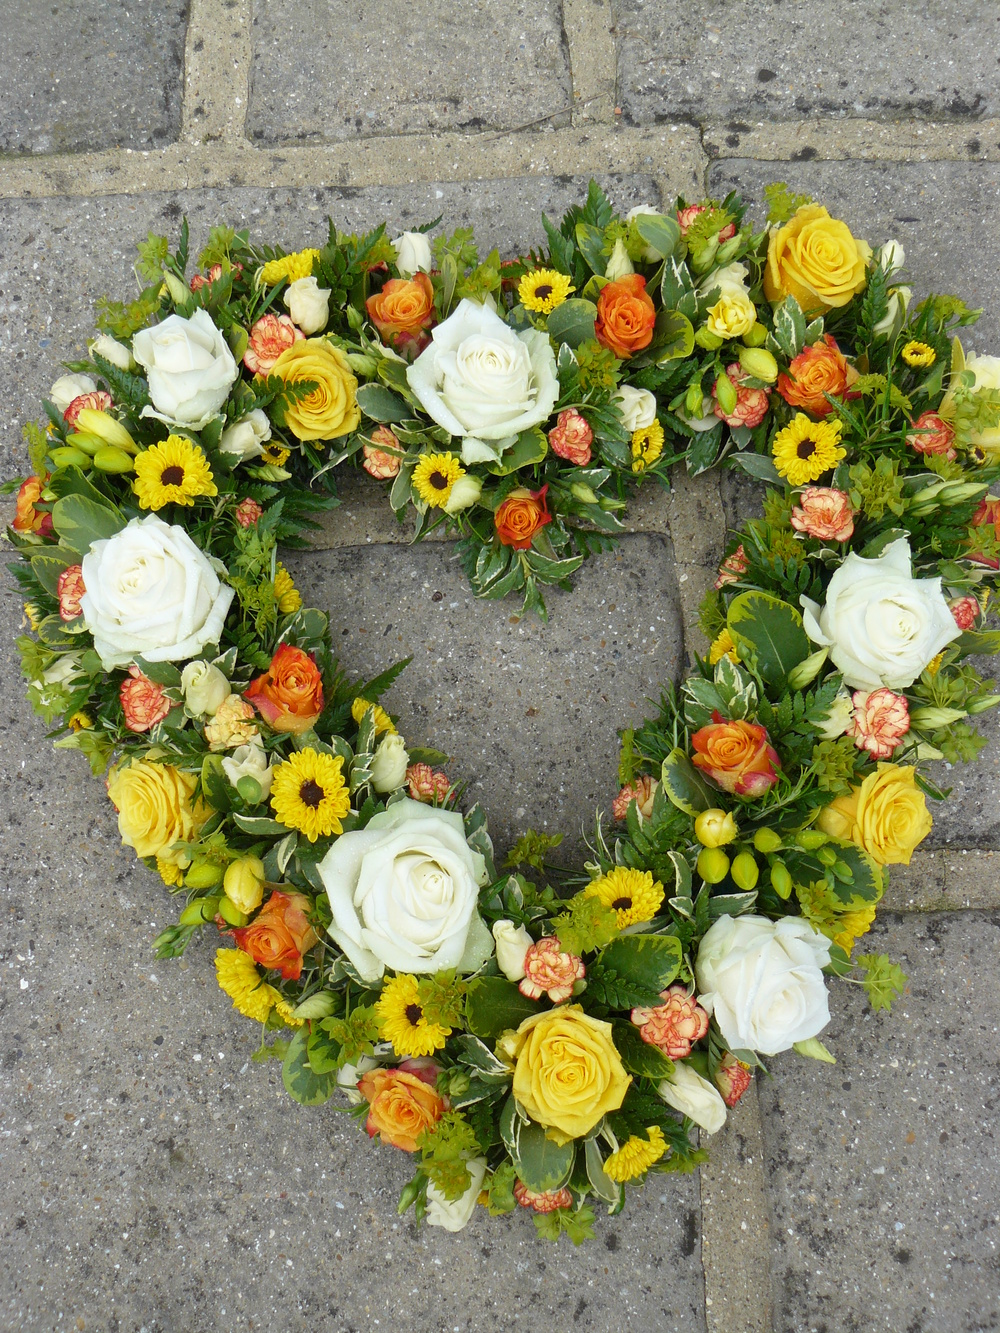 Funeral Flowers Wreaths Crafted With Care Heaven Flowers